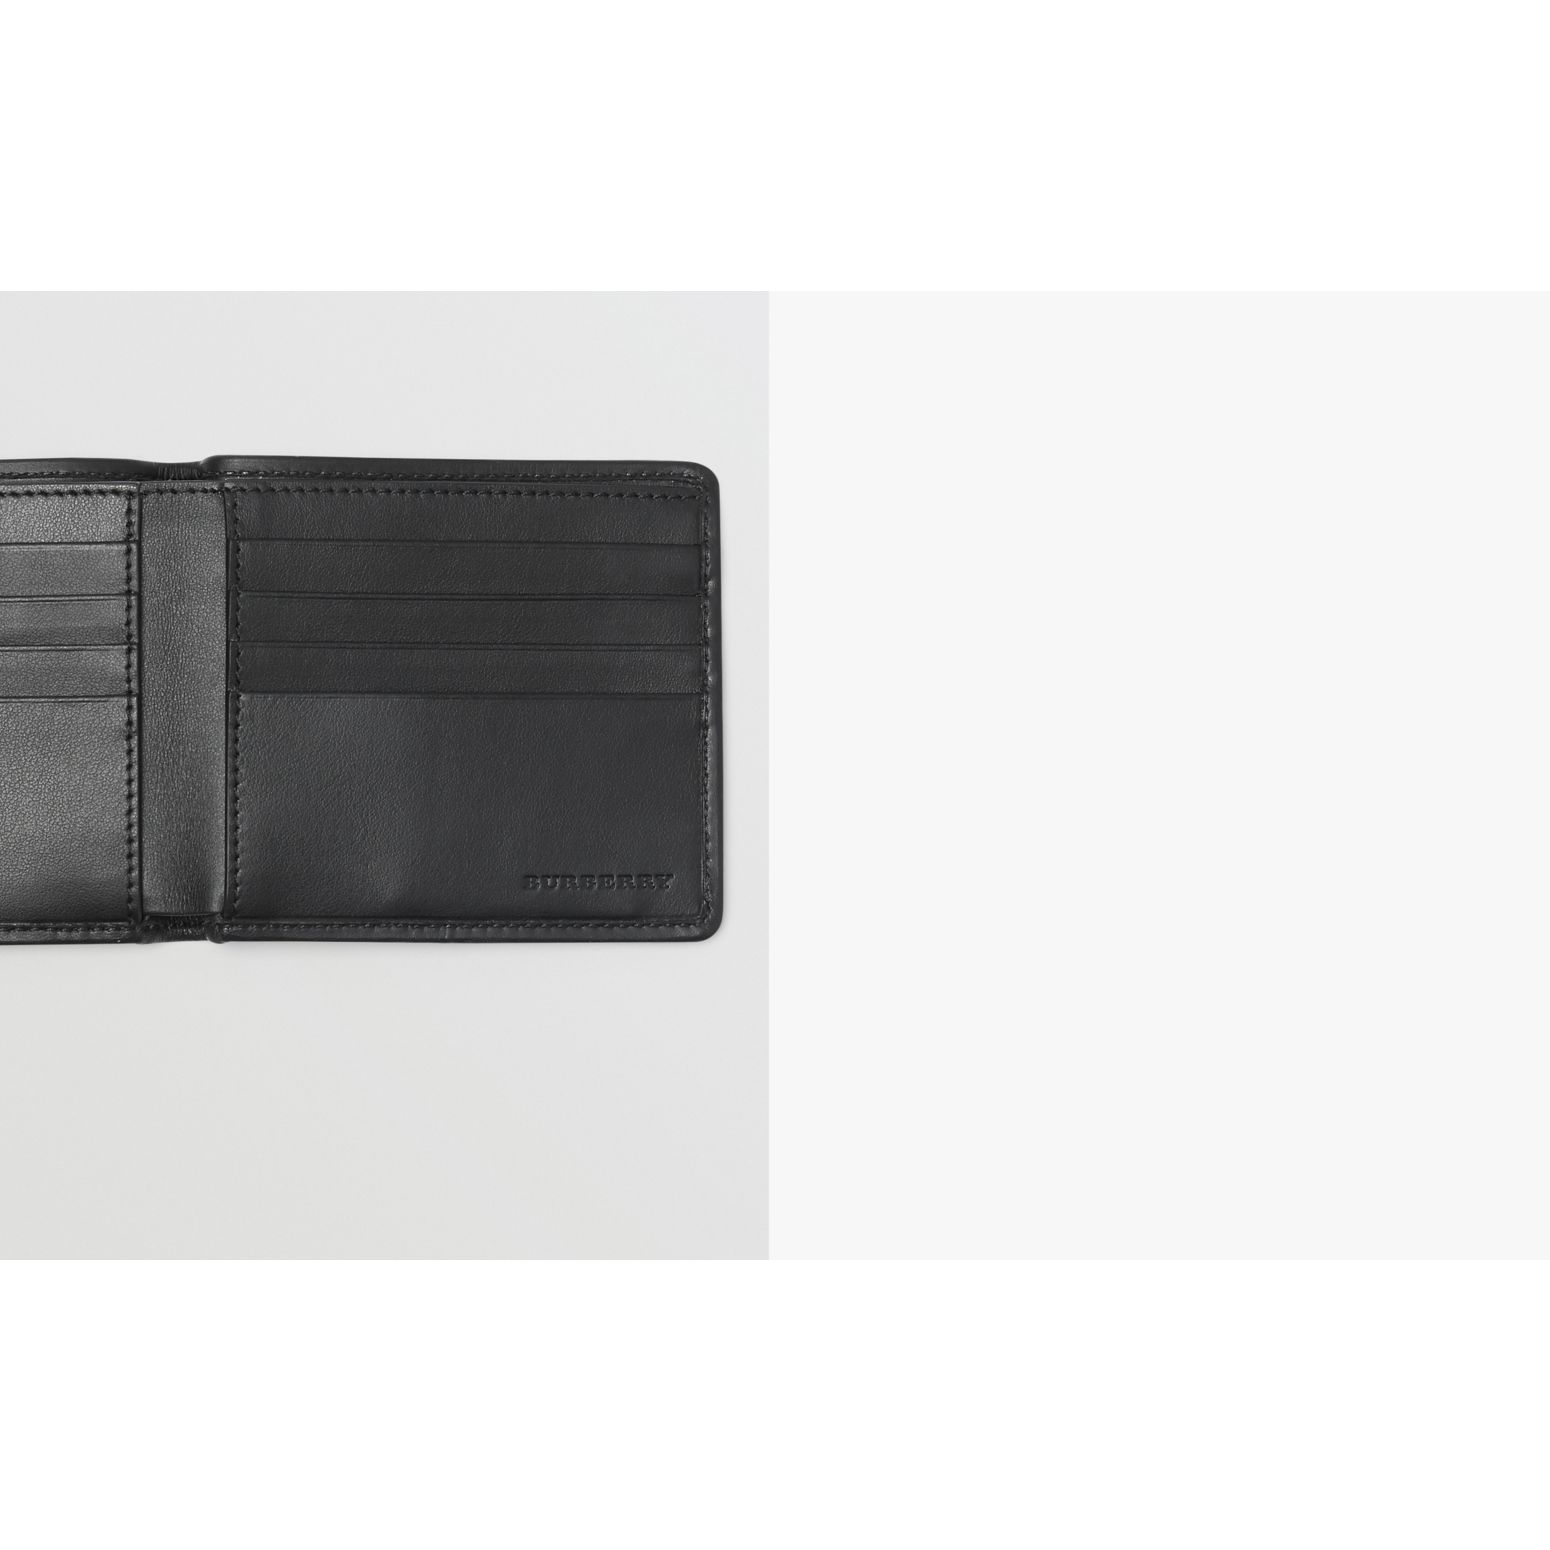 1983 Check and Leather International Bifold Wallet in Black - Men | Burberry - gallery image 1